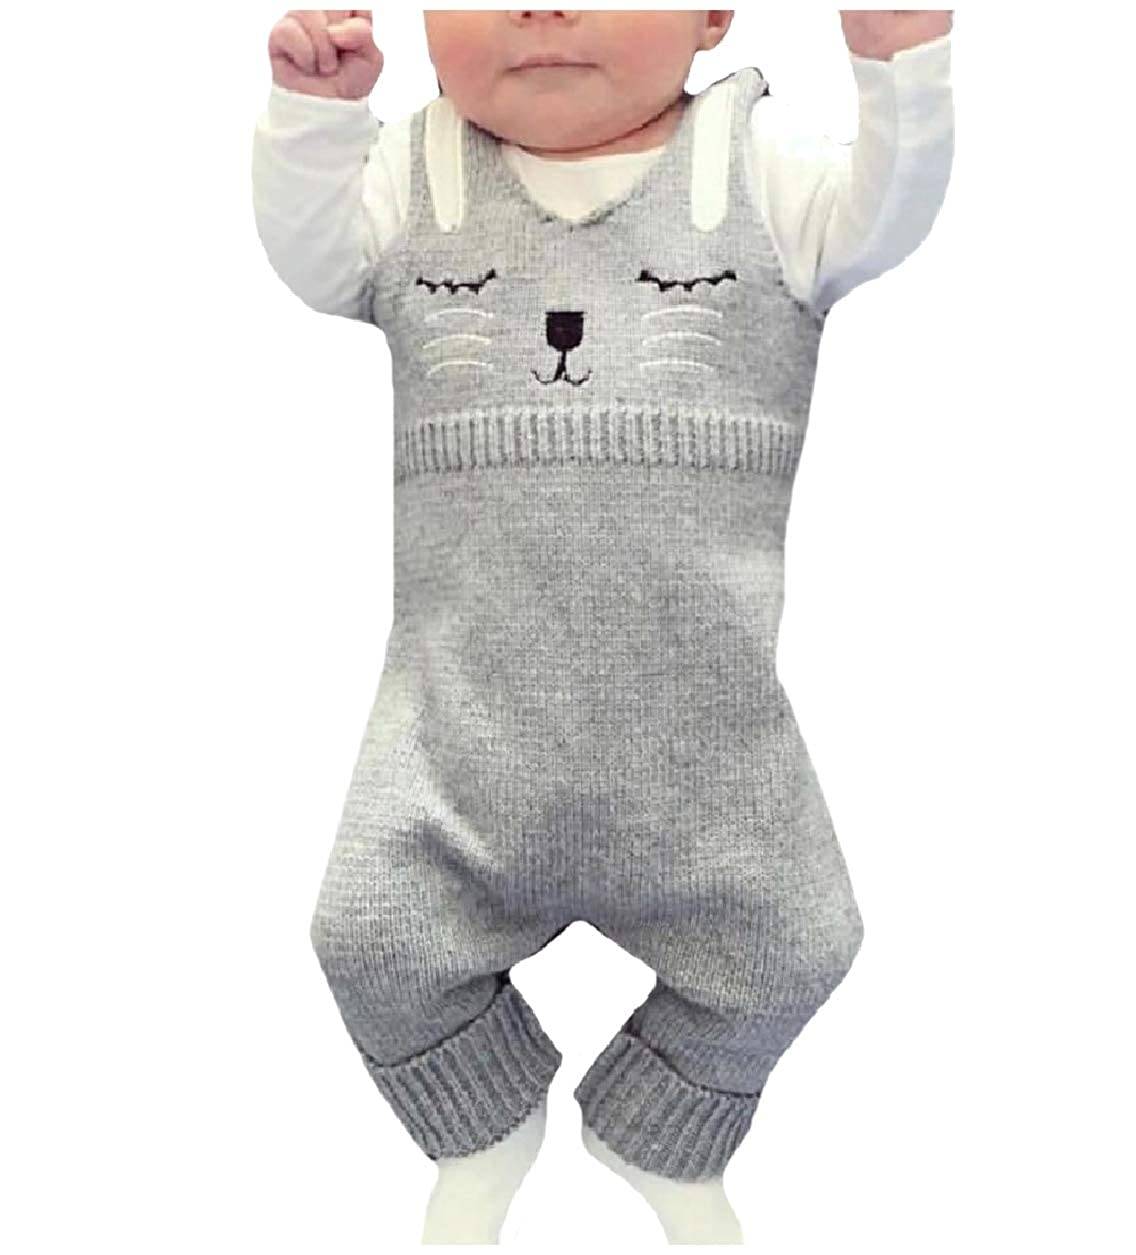 6a6d93babcdb Amazon.com: Abetteric New Baby Knitwear Cartoon Sleeveless Romper Jumpsuit  Outfits Set: Clothing